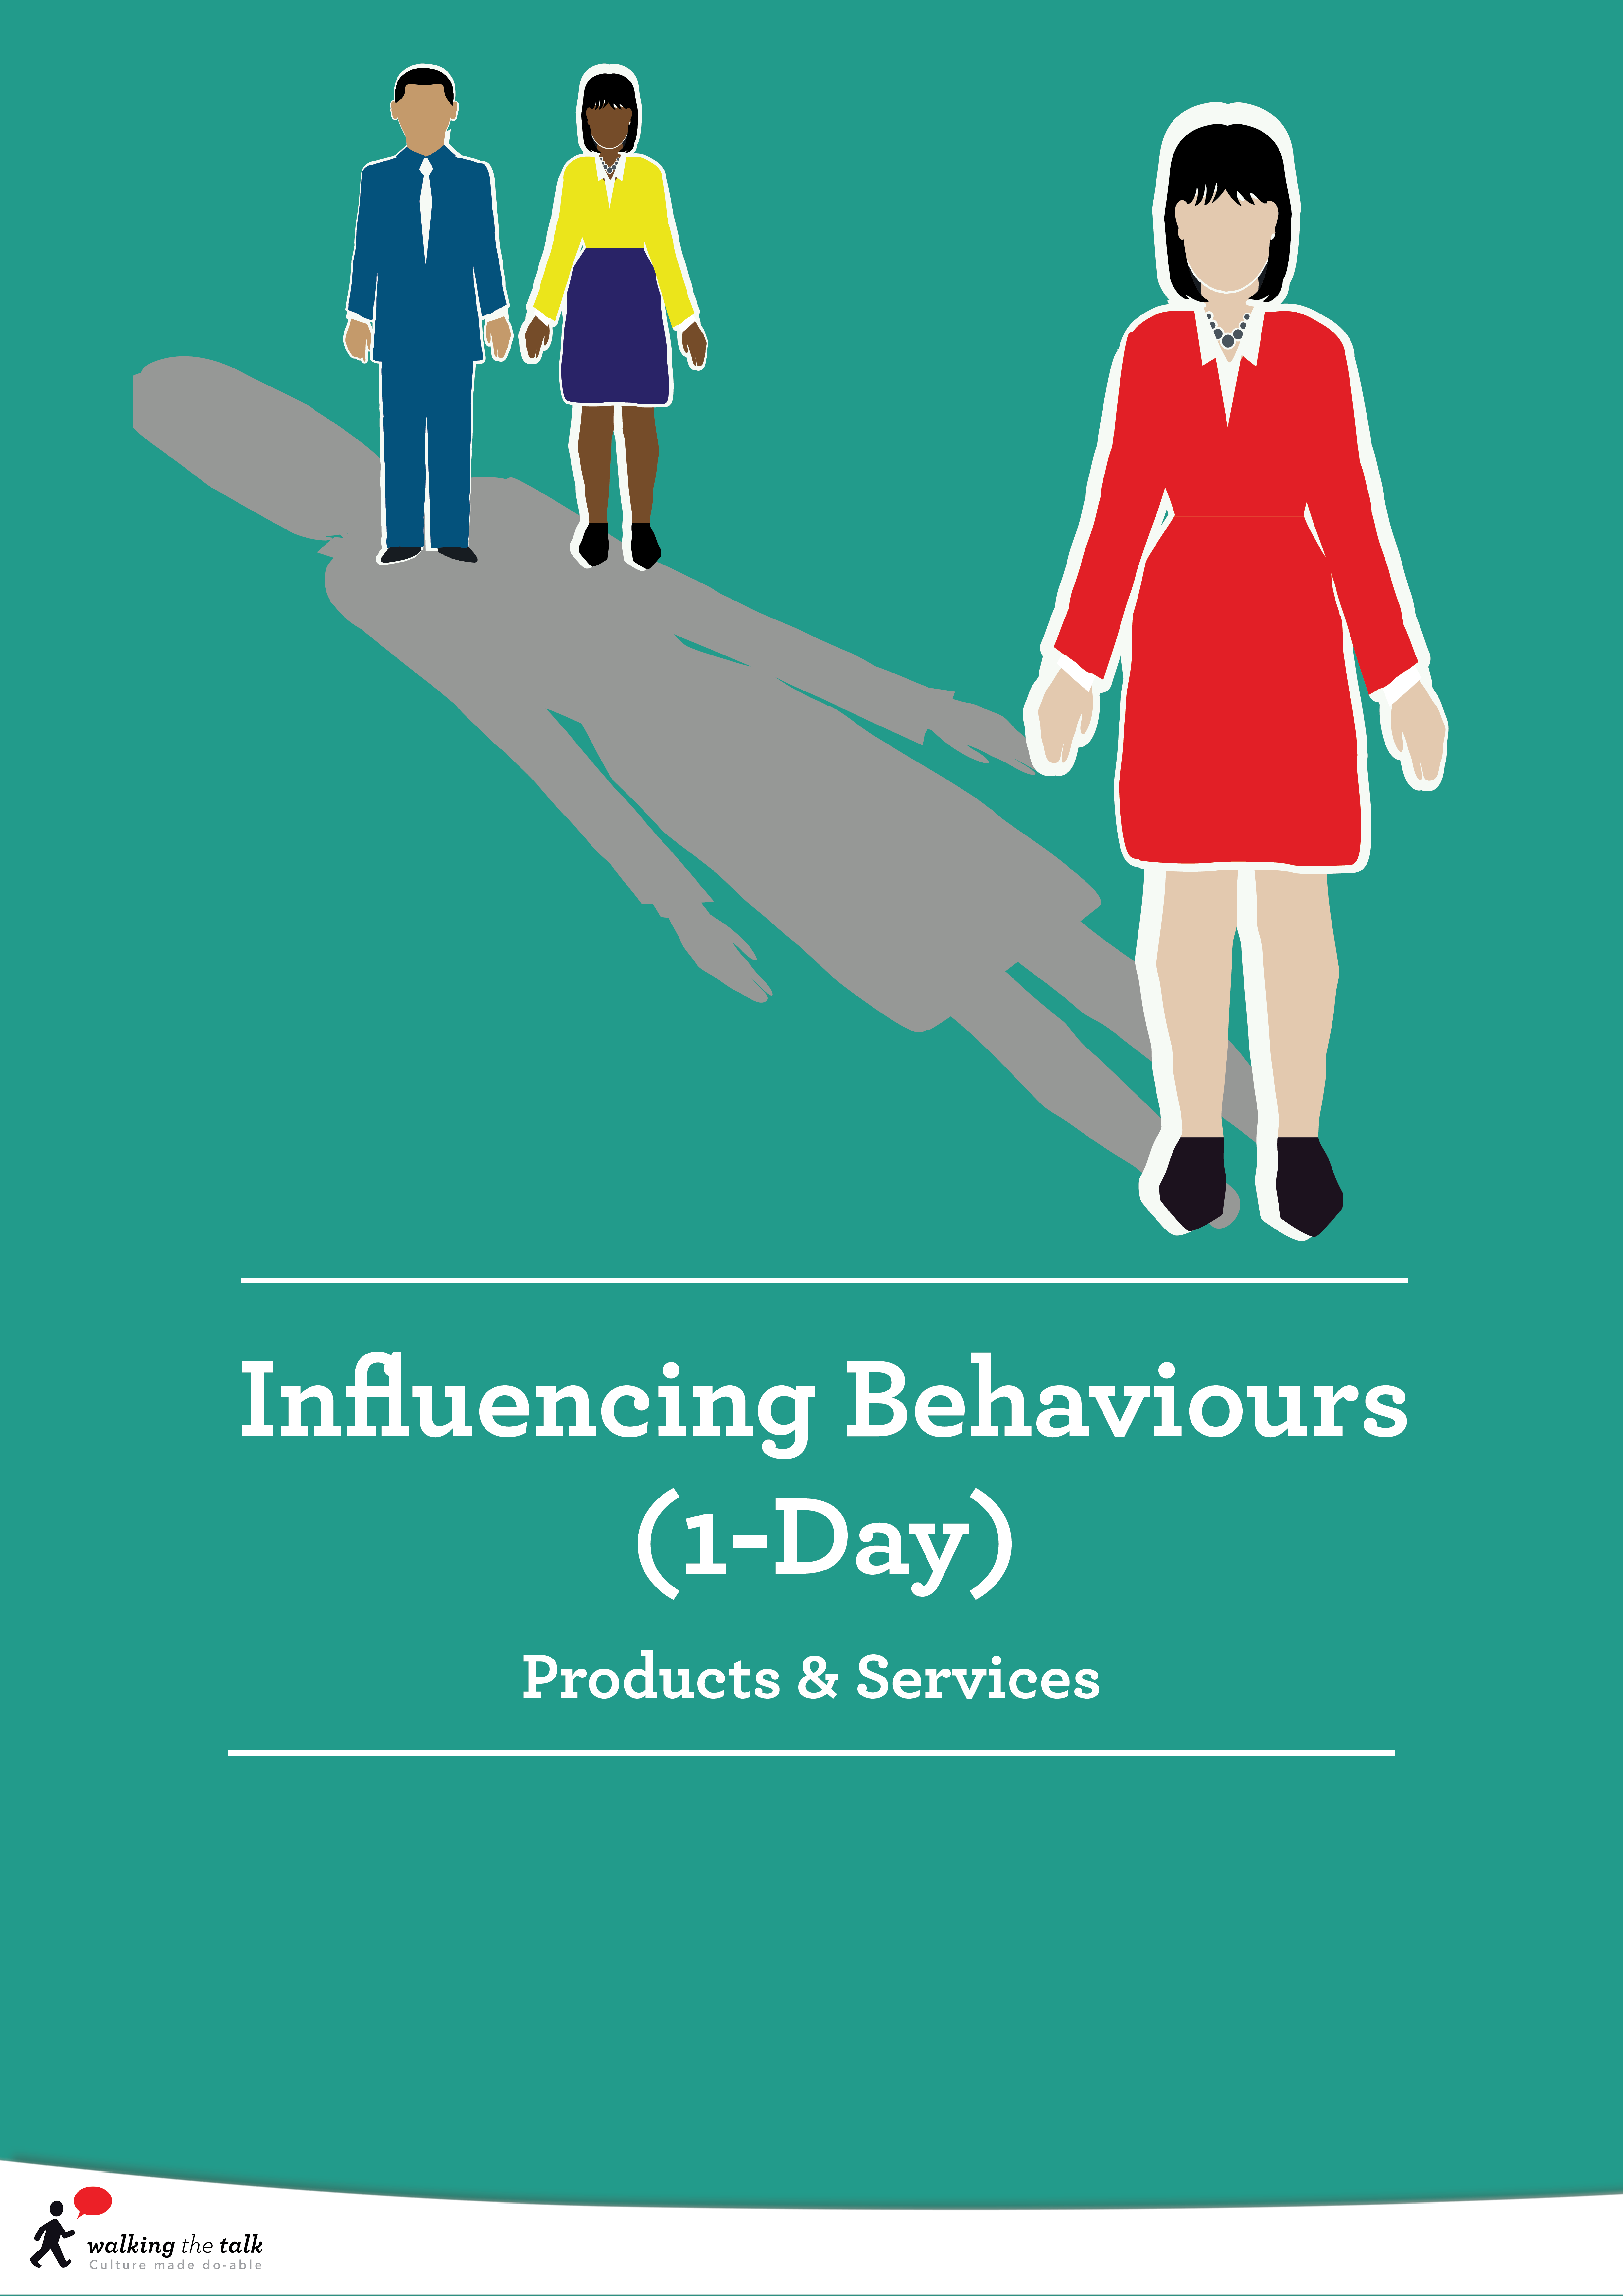 How equipped are your leaders and managers to influence behaviours?